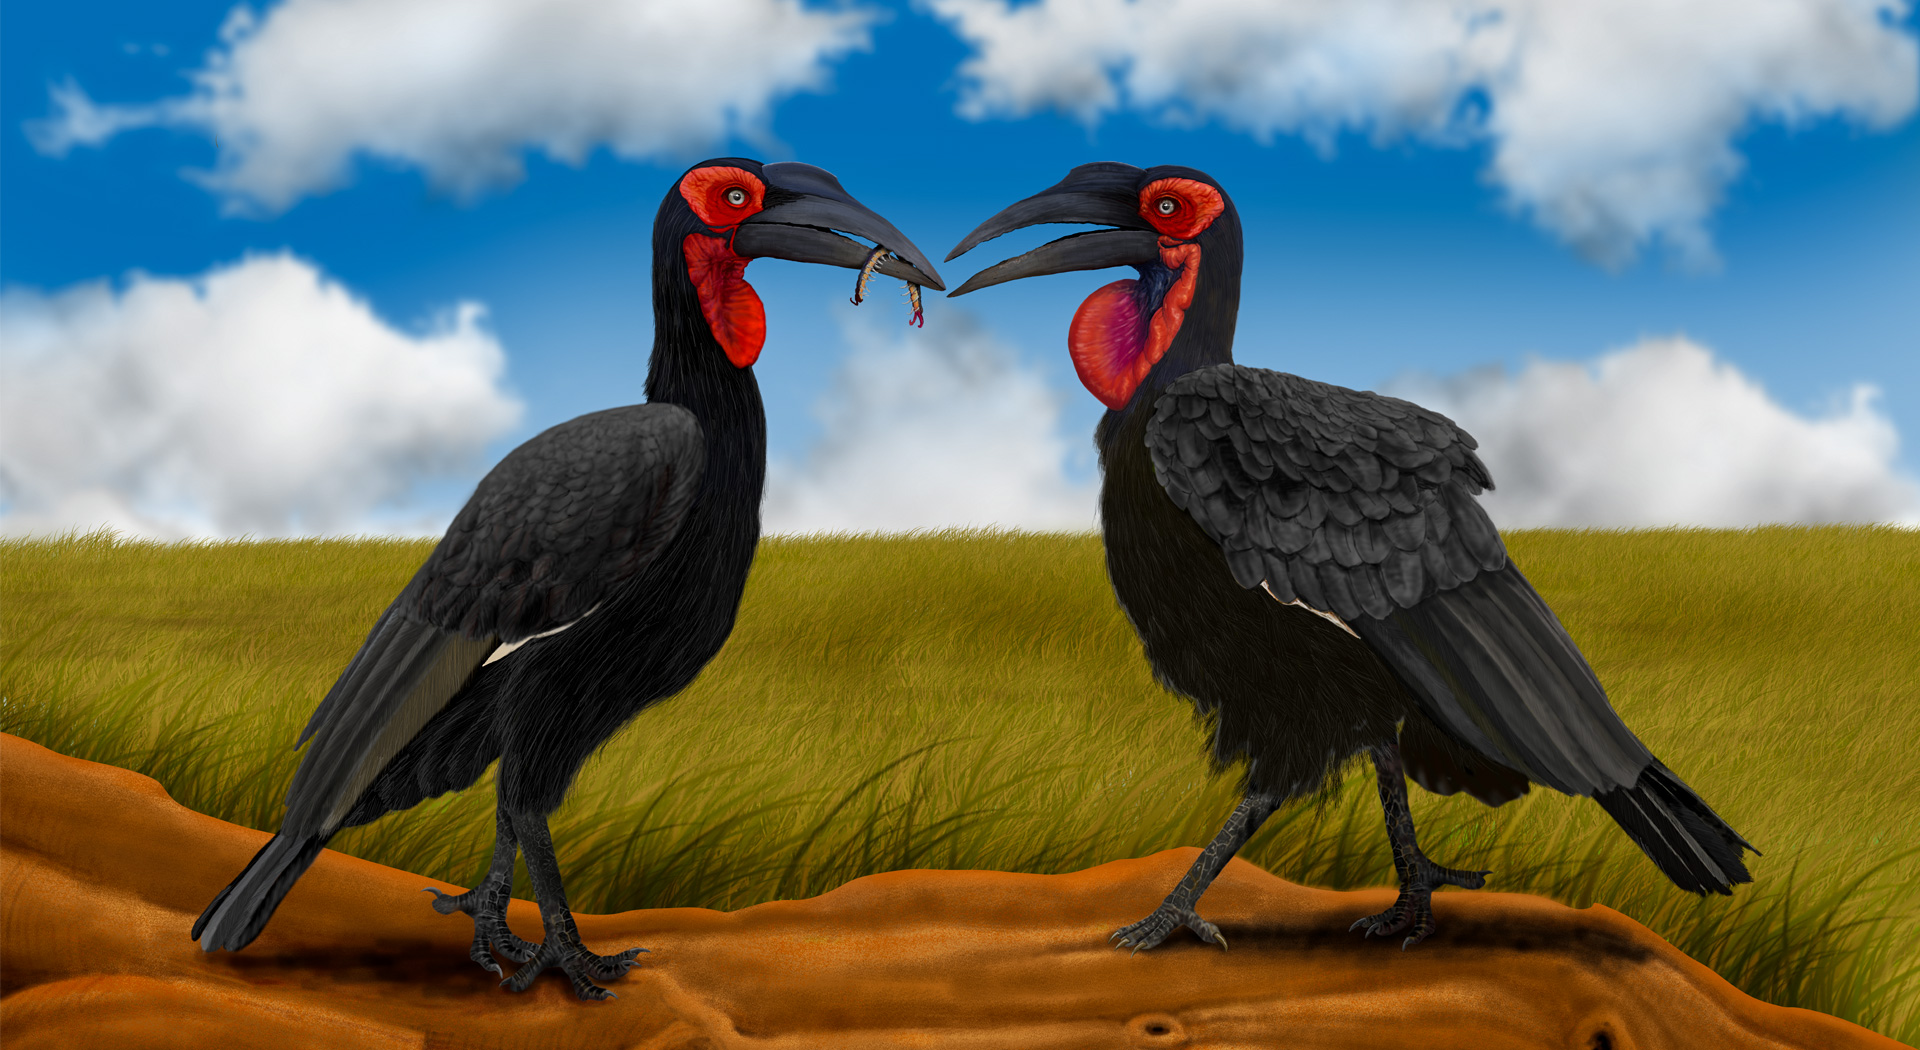 Southern Ground Hornbill, Bucorvus leadbeateri, Hornbill_Painting, Illustration, Birds_Illustration